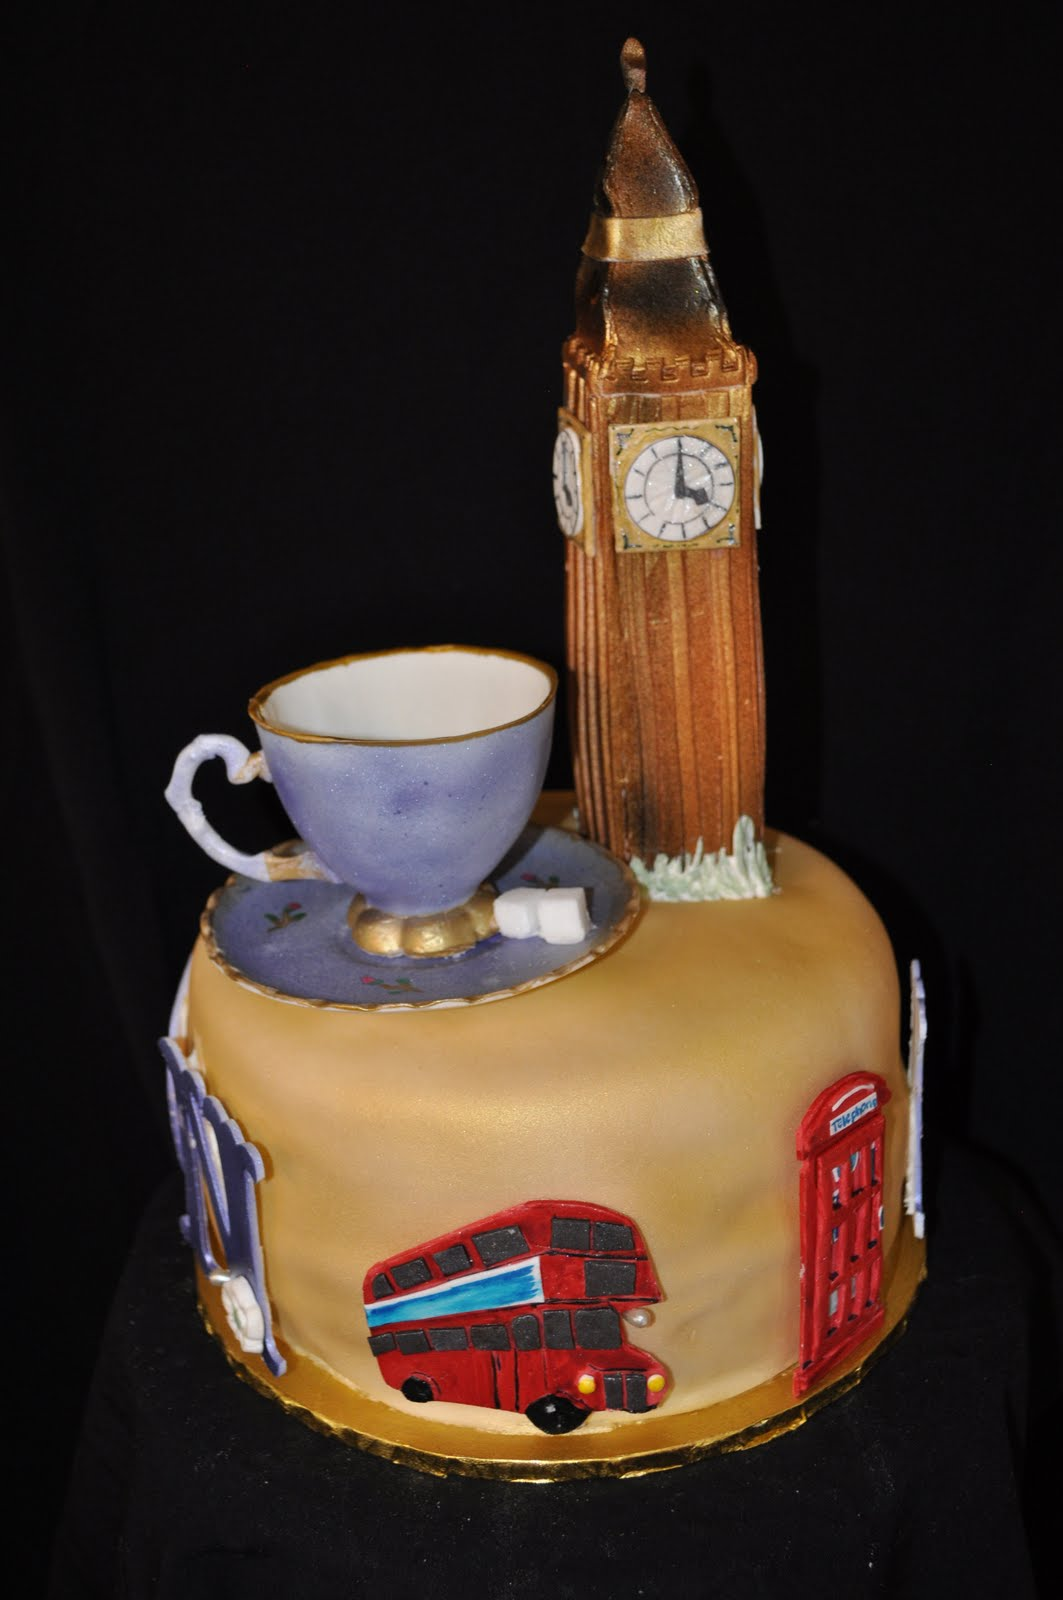 WHAT A CRAZY HOBBY!!: London Cake!